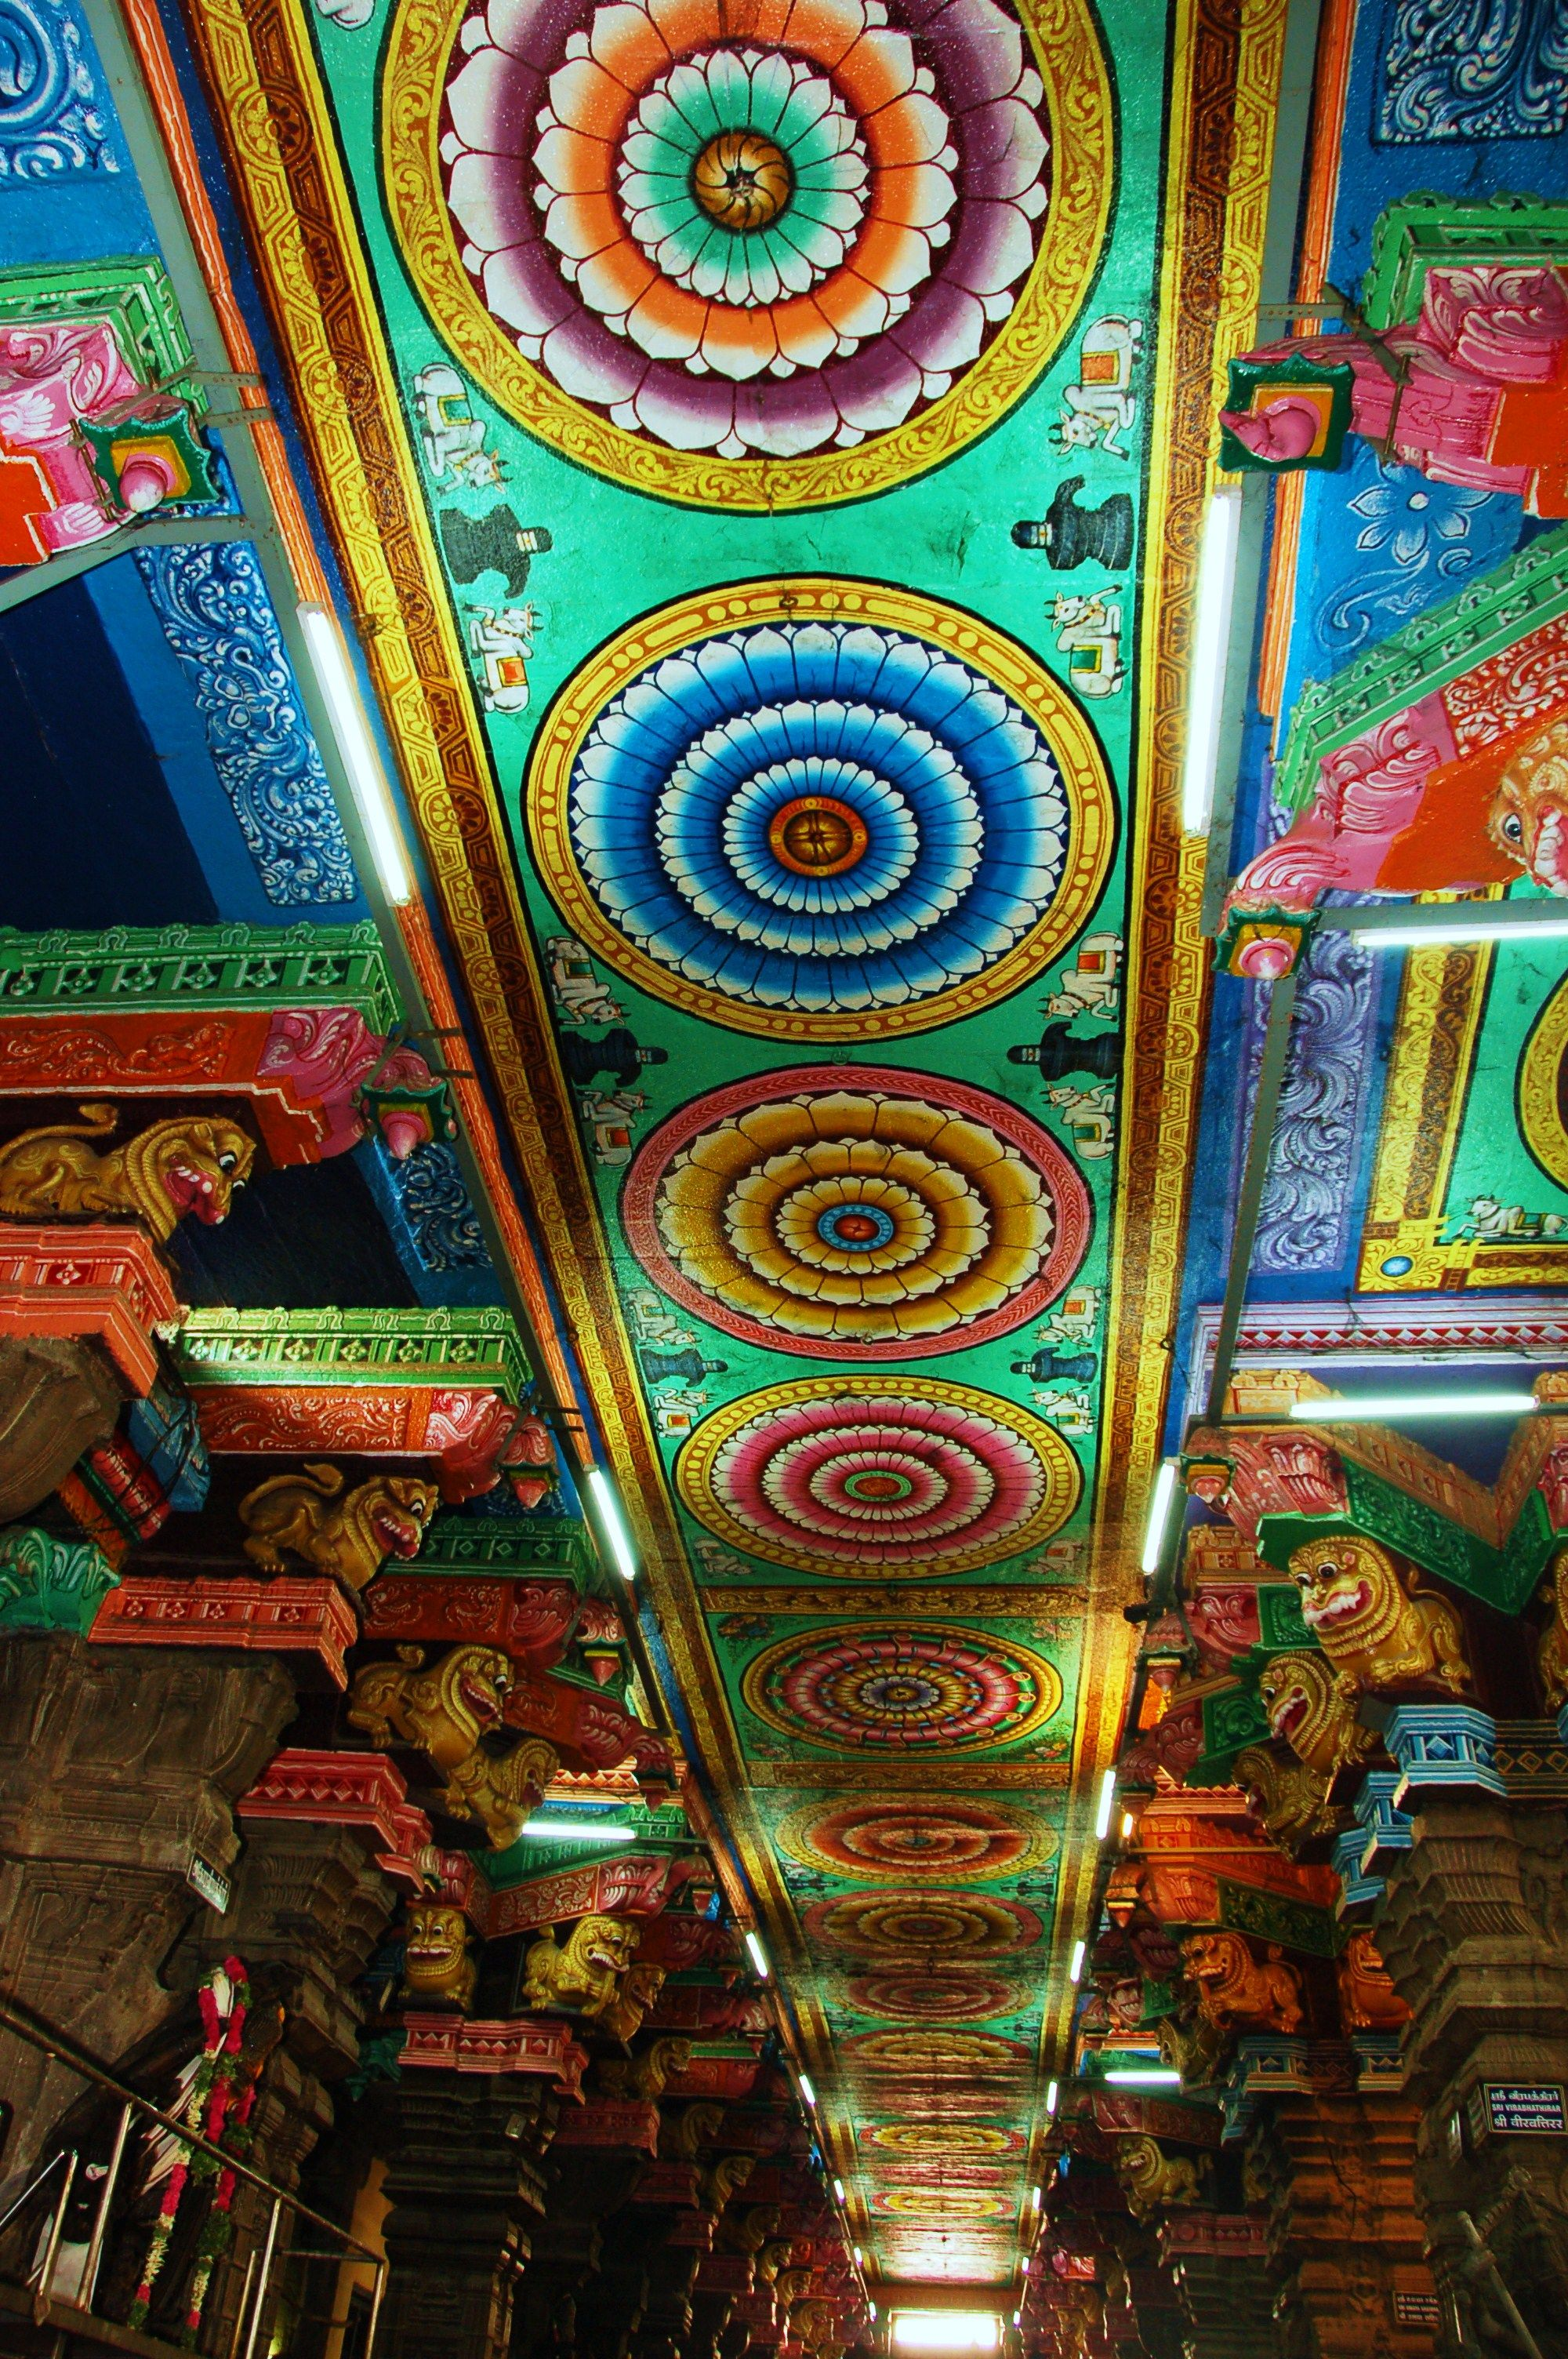 meenakshi temple in China | Color-a-go-go in 2019 | Hindu ...